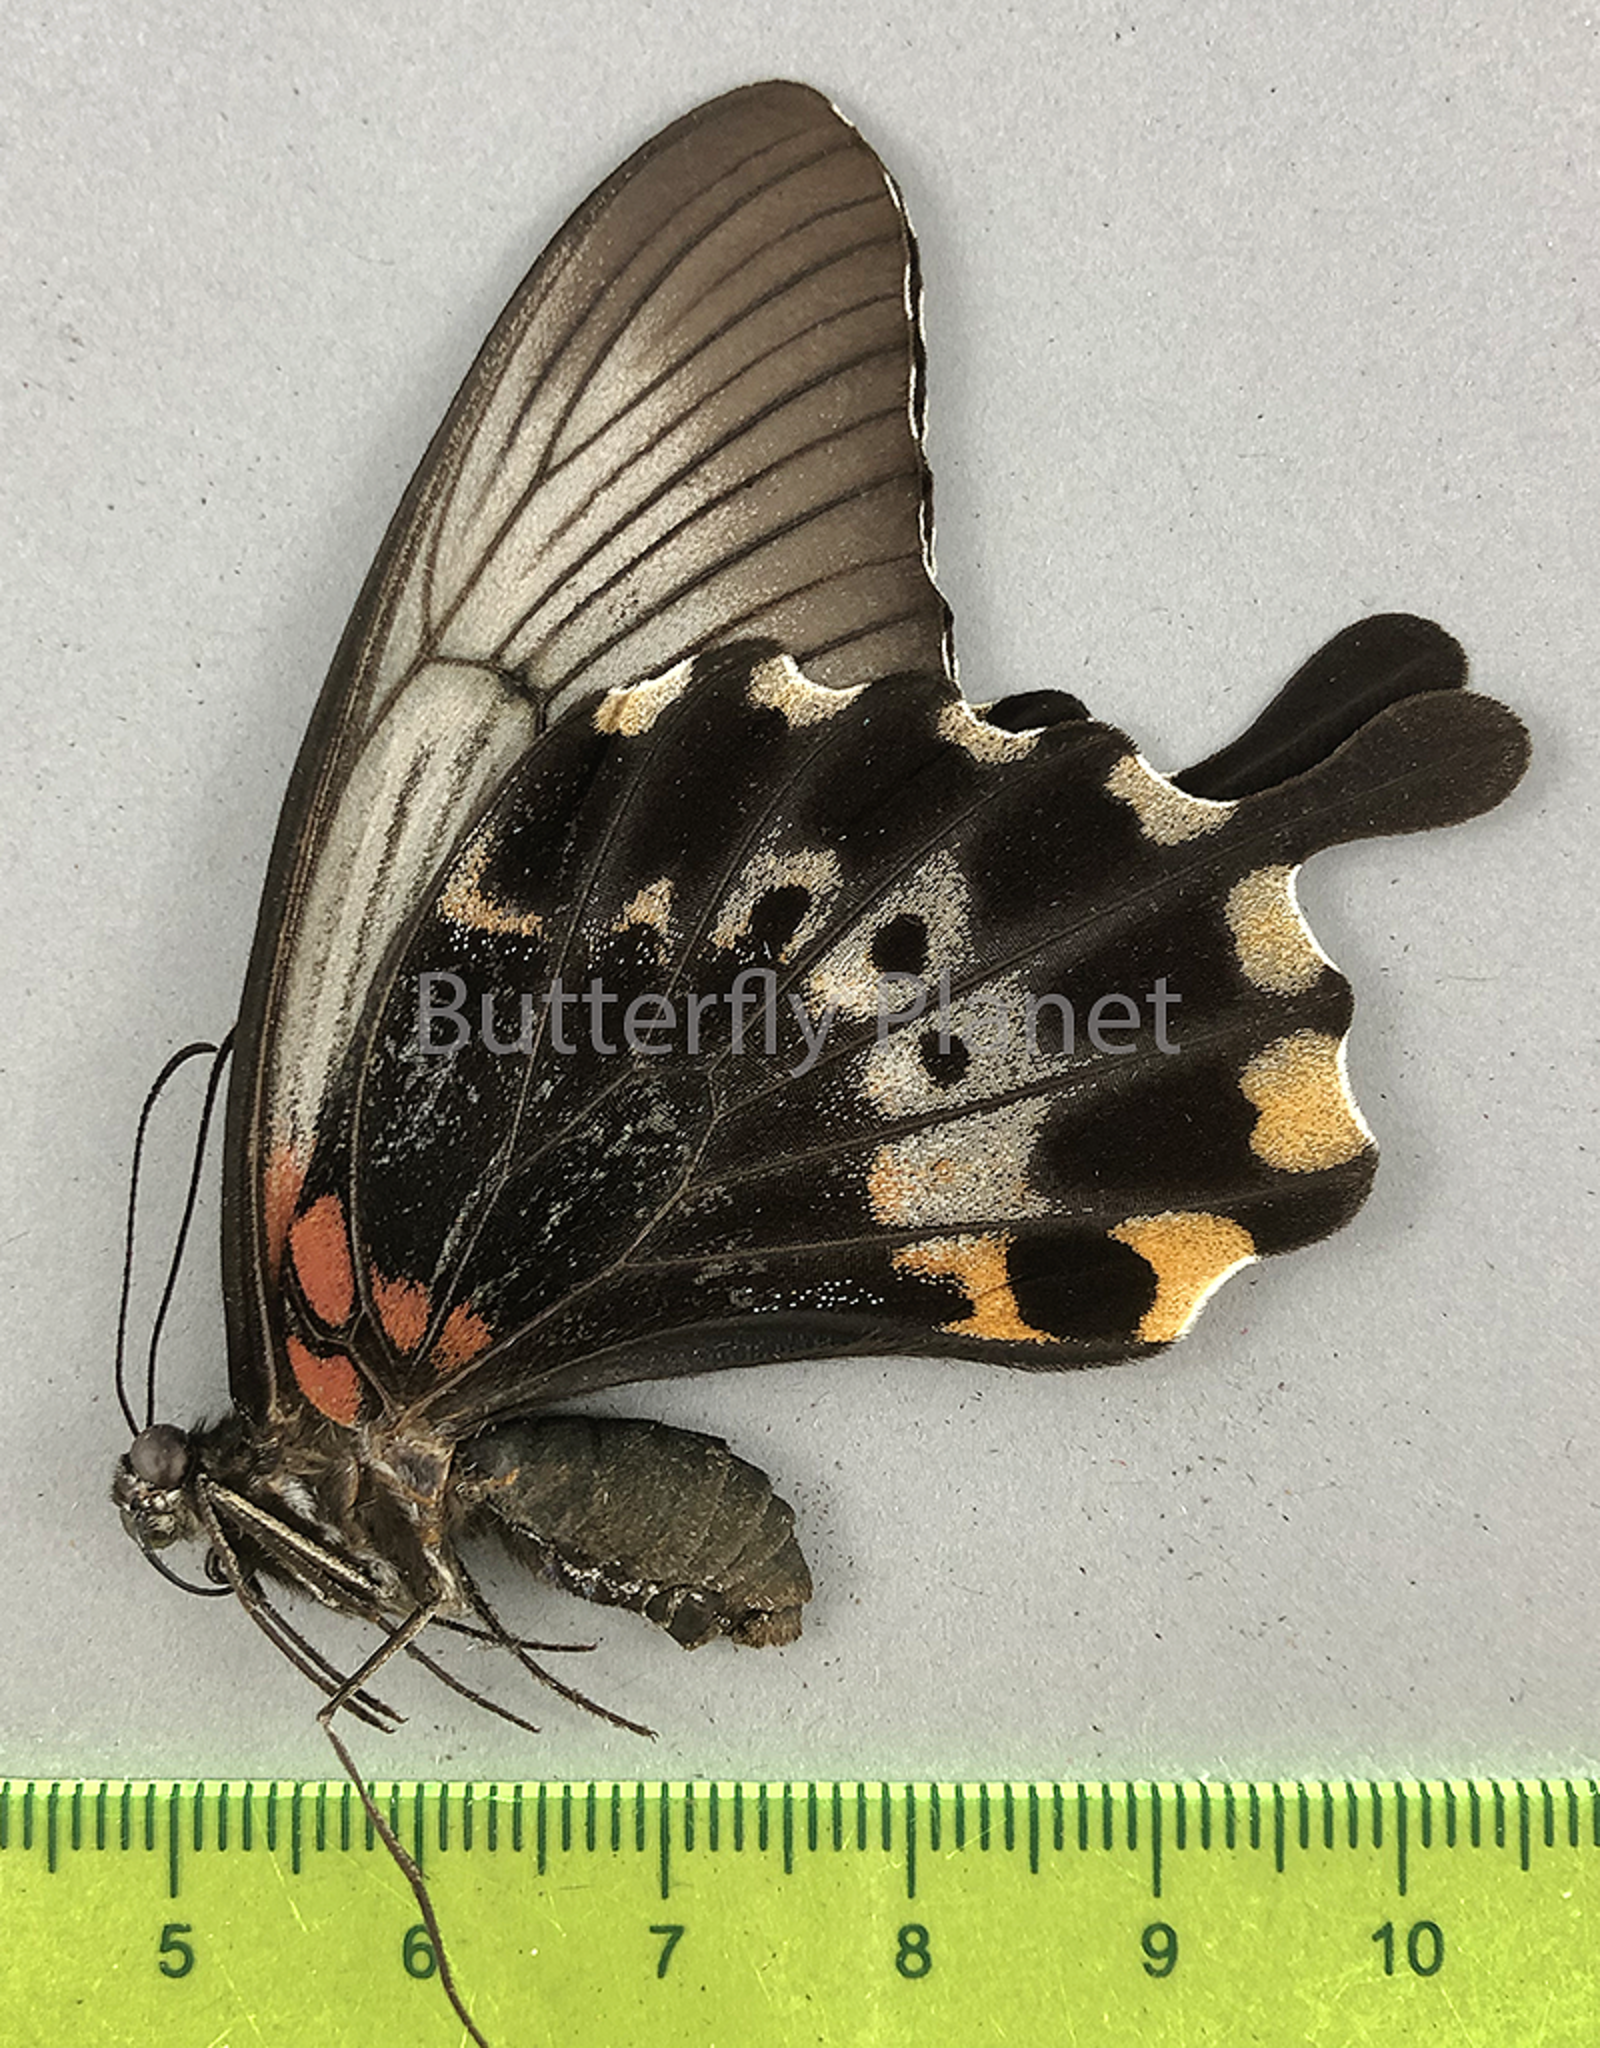 Papilio lowi suffusa F A1/A1- Marinduque, Philippines